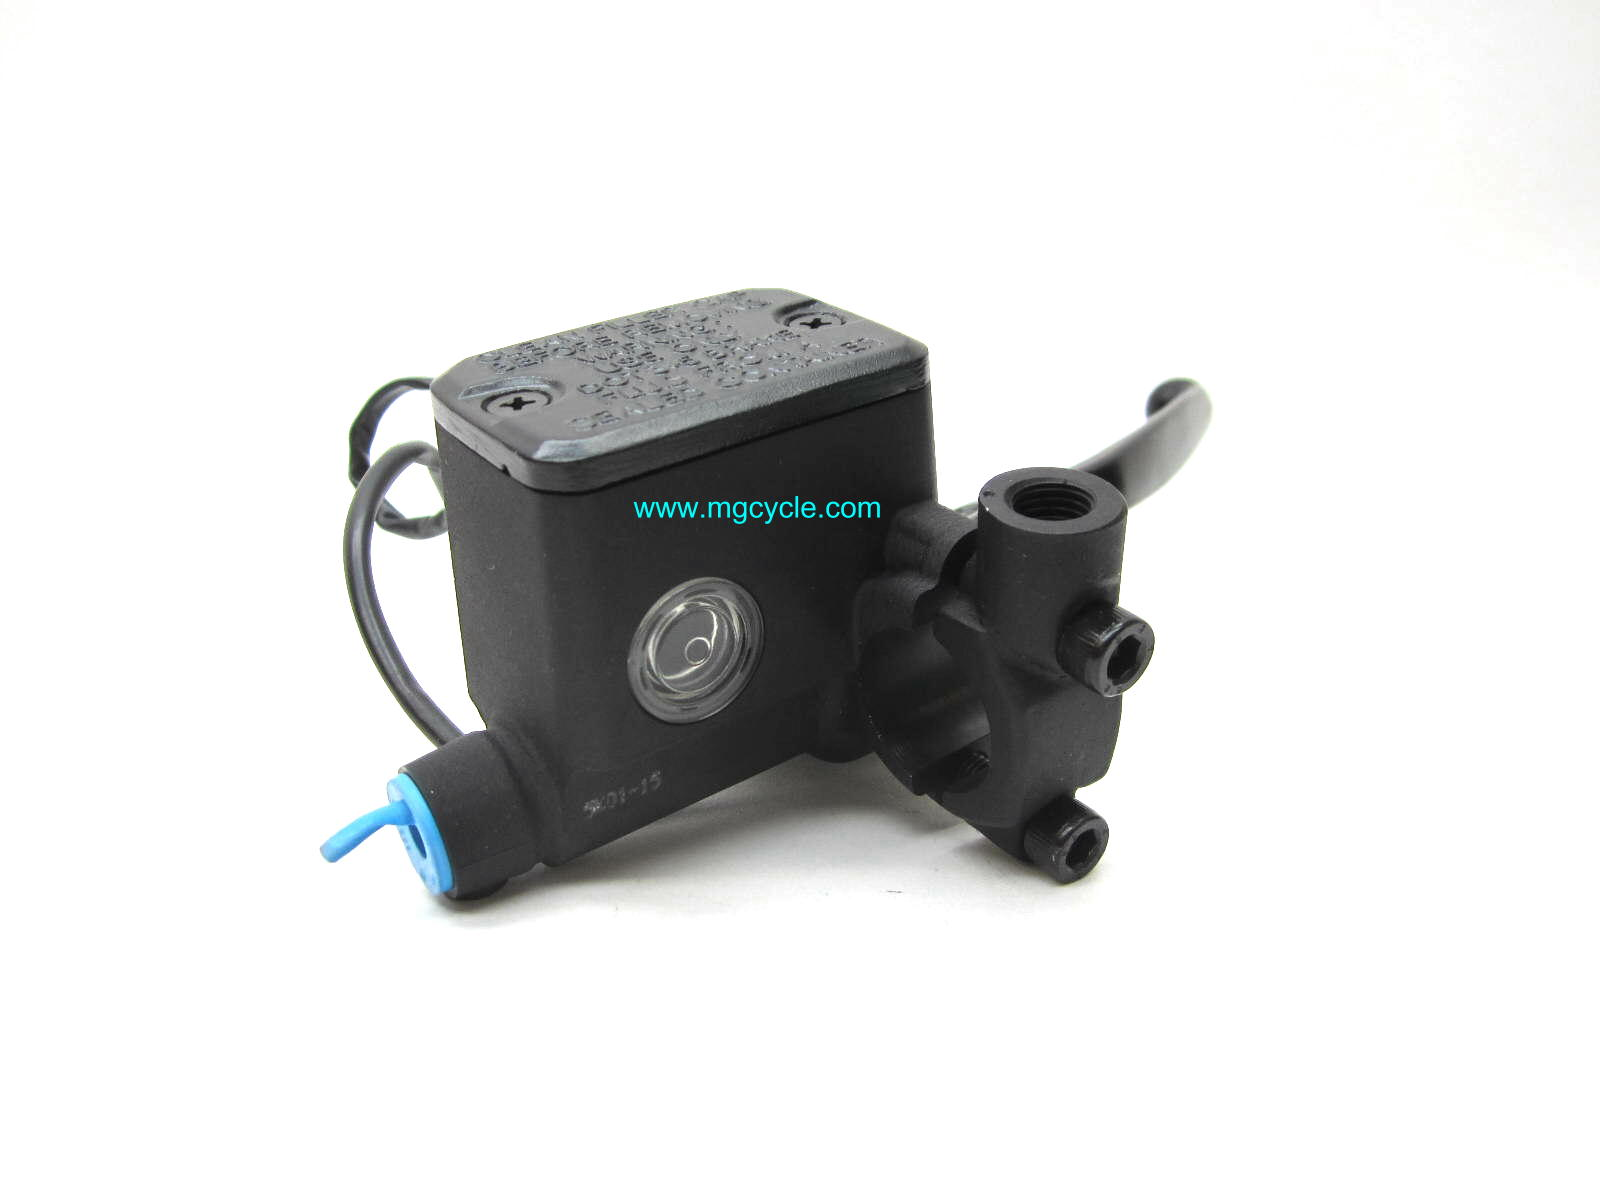 Brembo 15mm master cylinder, black lever, with switch & wires